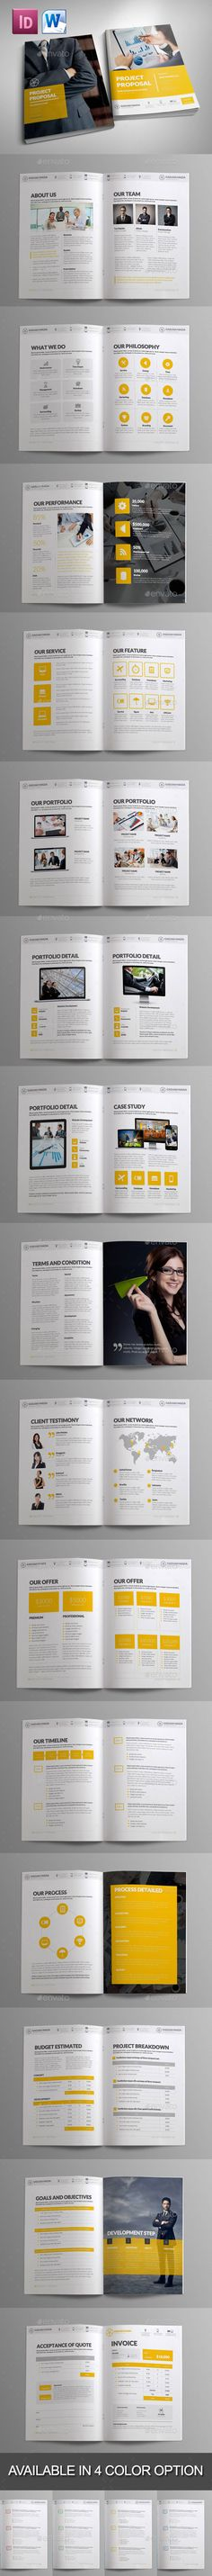 Basic Proposal Template (CS4, 8.5x11, basic, binangkit, business, clean, company, corporate, easy, indonesia, minimalist, modern, perfect, proposal, simple, simplicity)